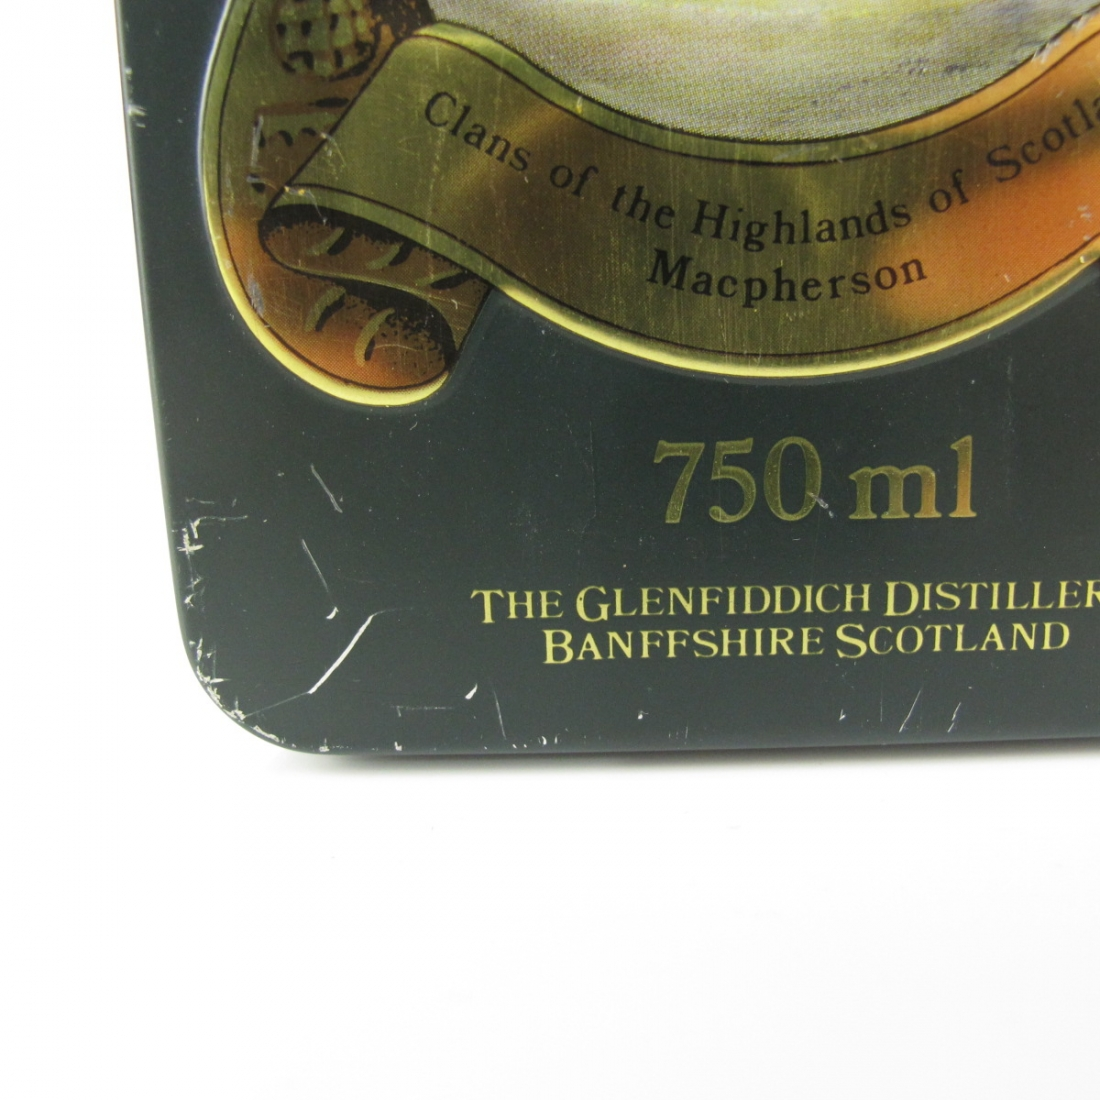 Glenfiddich Clans of the Highlands 75cl / Clan Macpherson